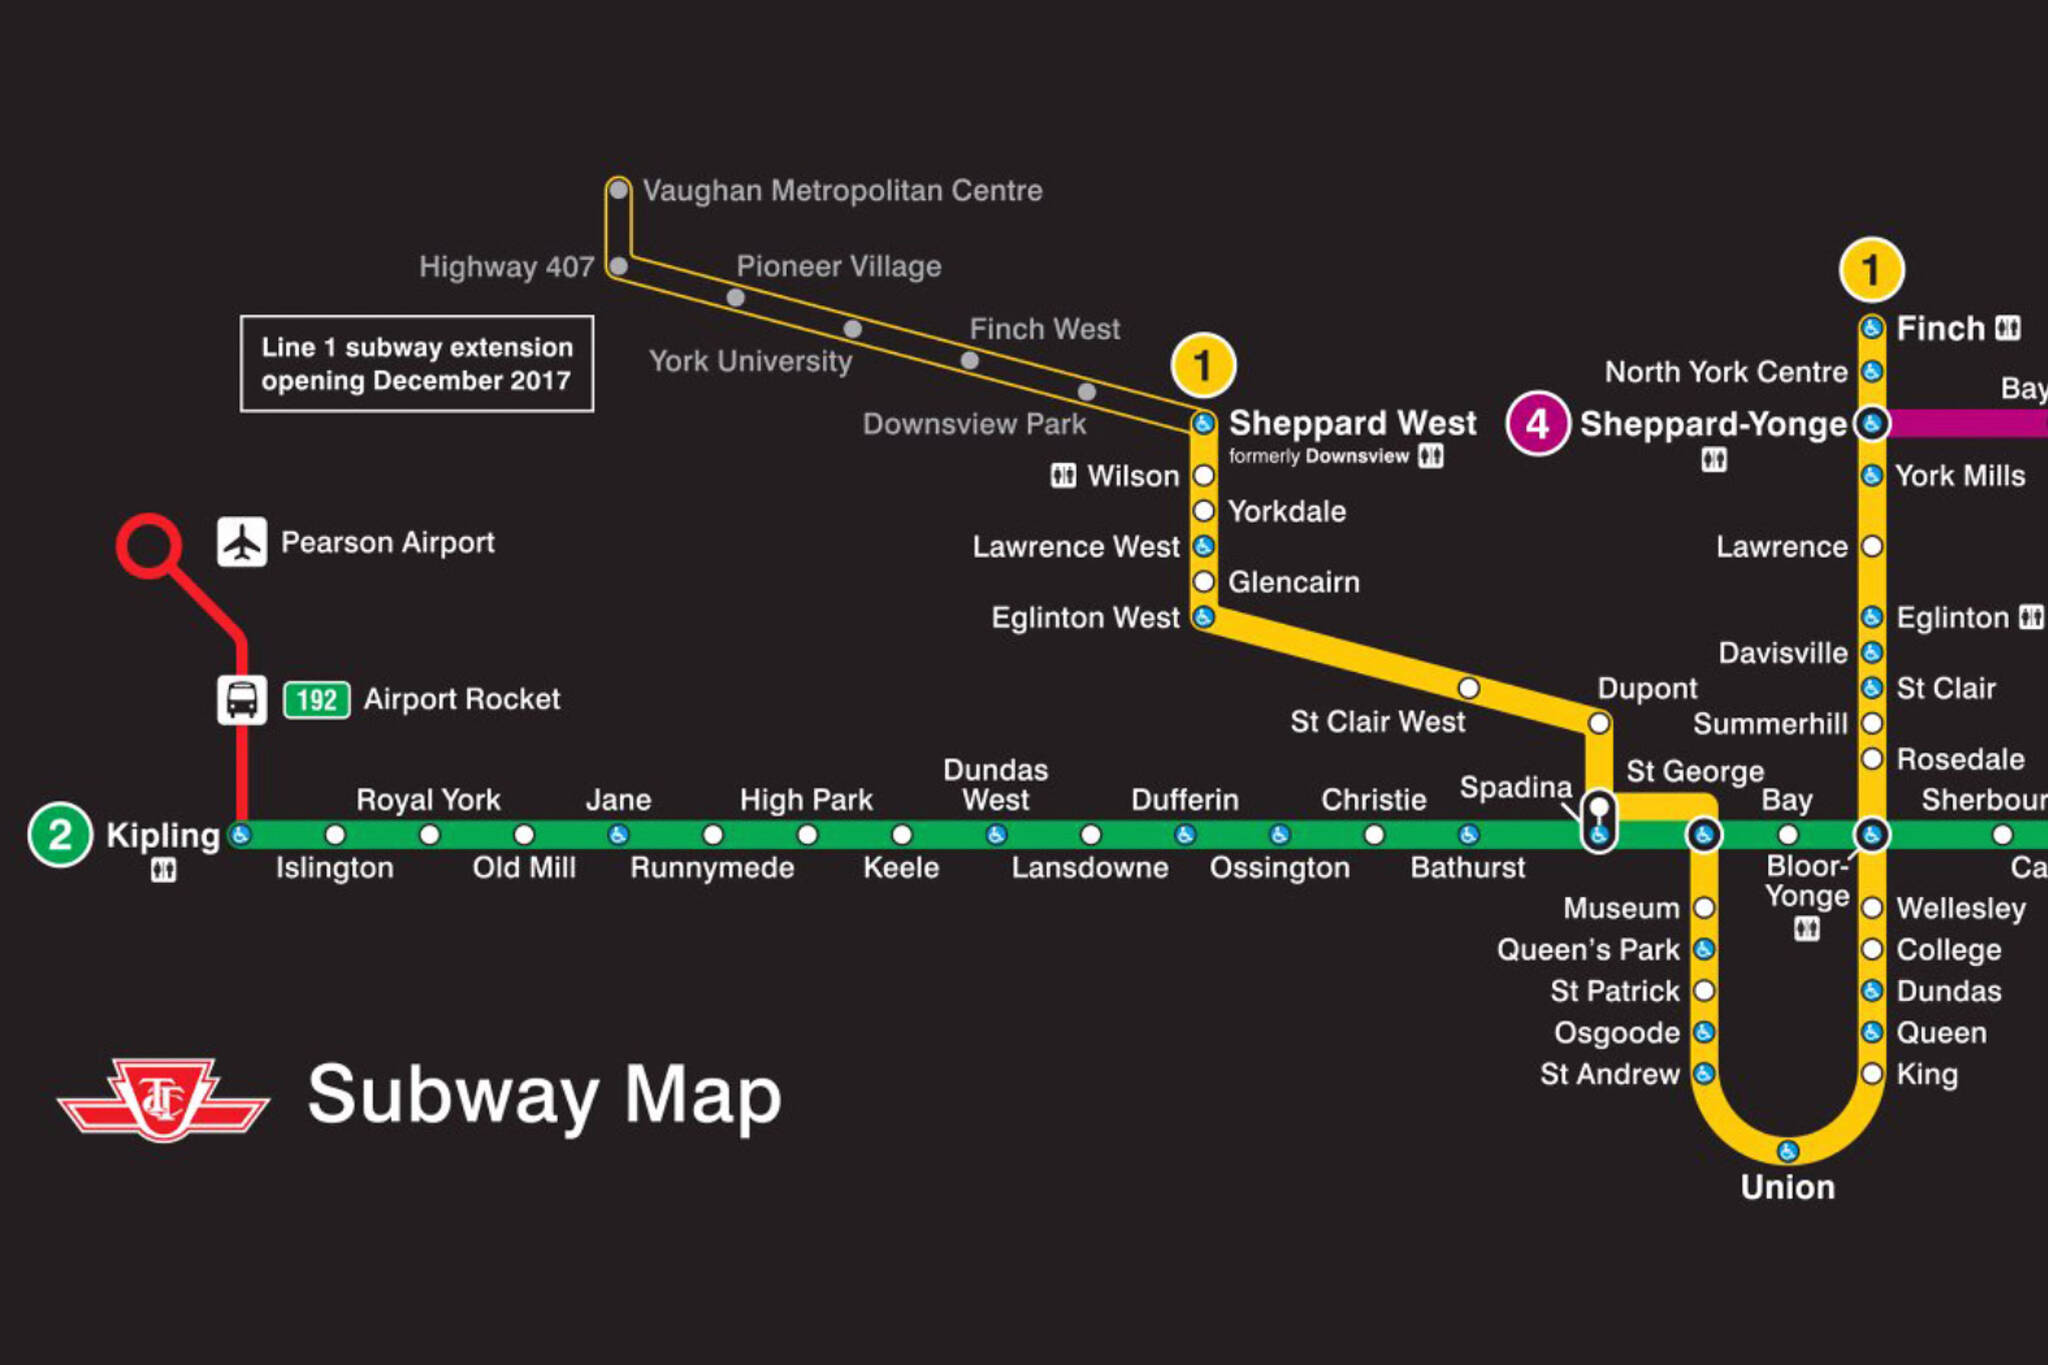 Toronto Subway Stations Map.The Ttc Shows Off New Subway Route Map